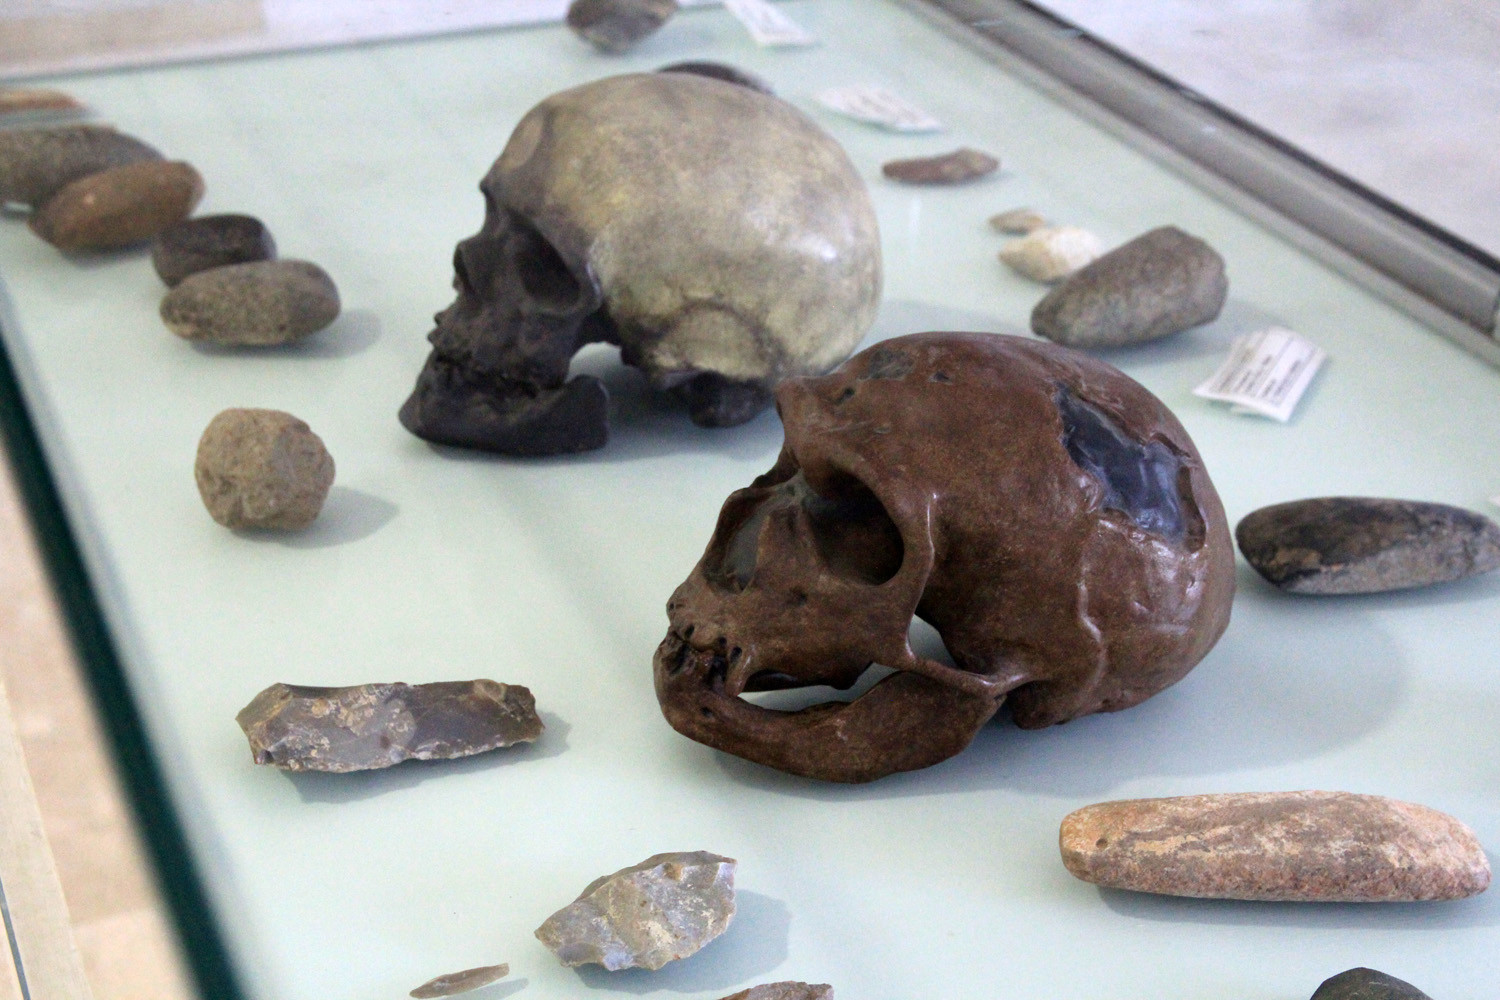 The Prehistoric Remains Found in Piñar